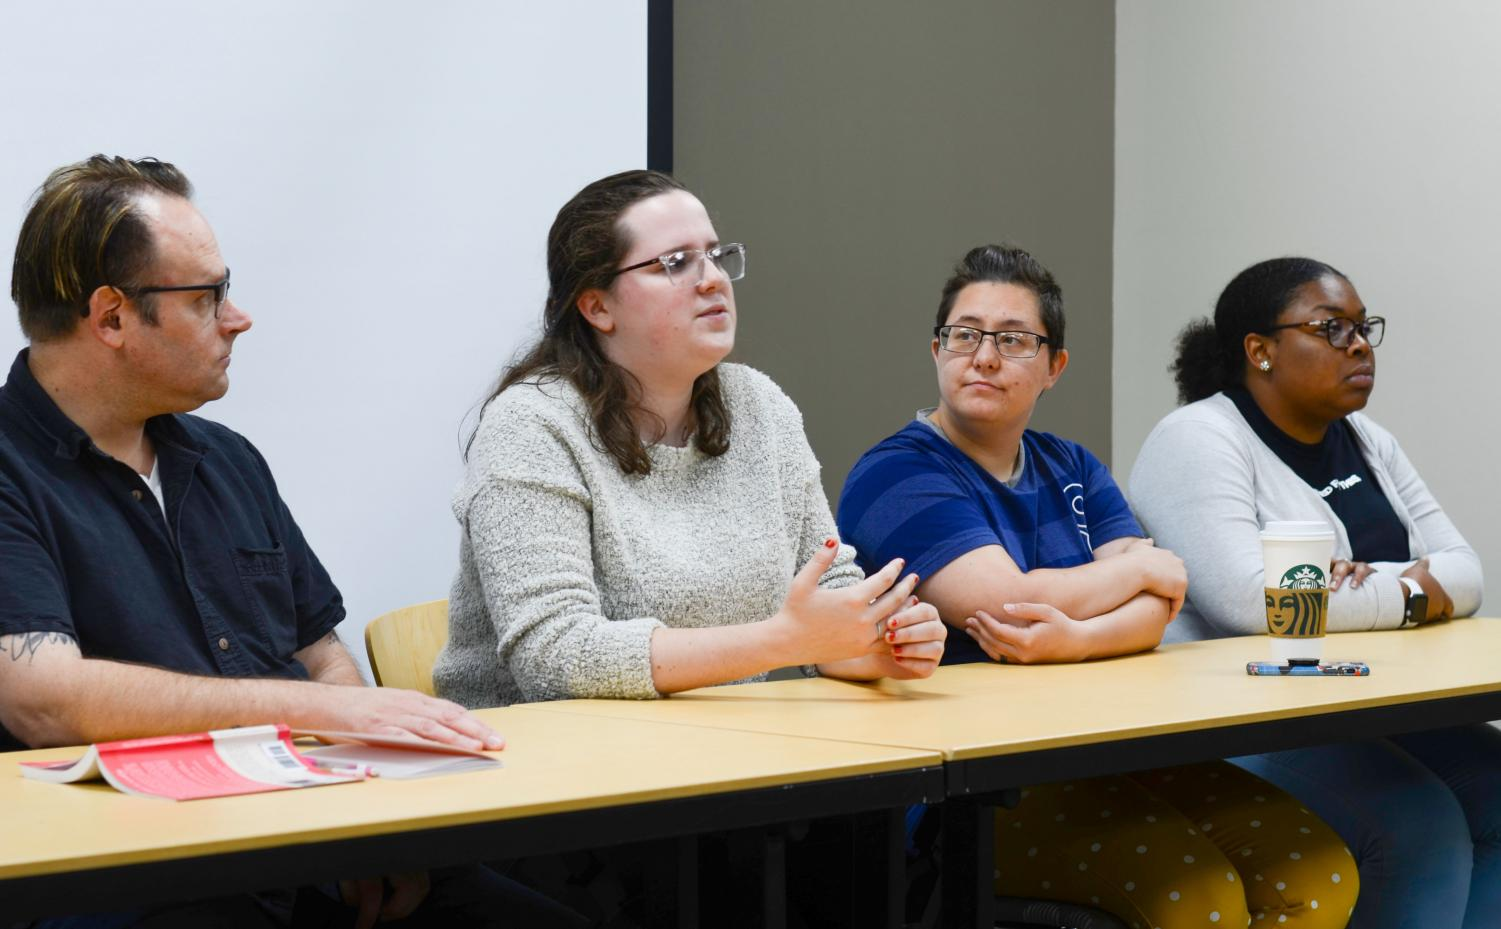 Panelists at Reeve Union speak about how spirituality has impacted their views on sex.